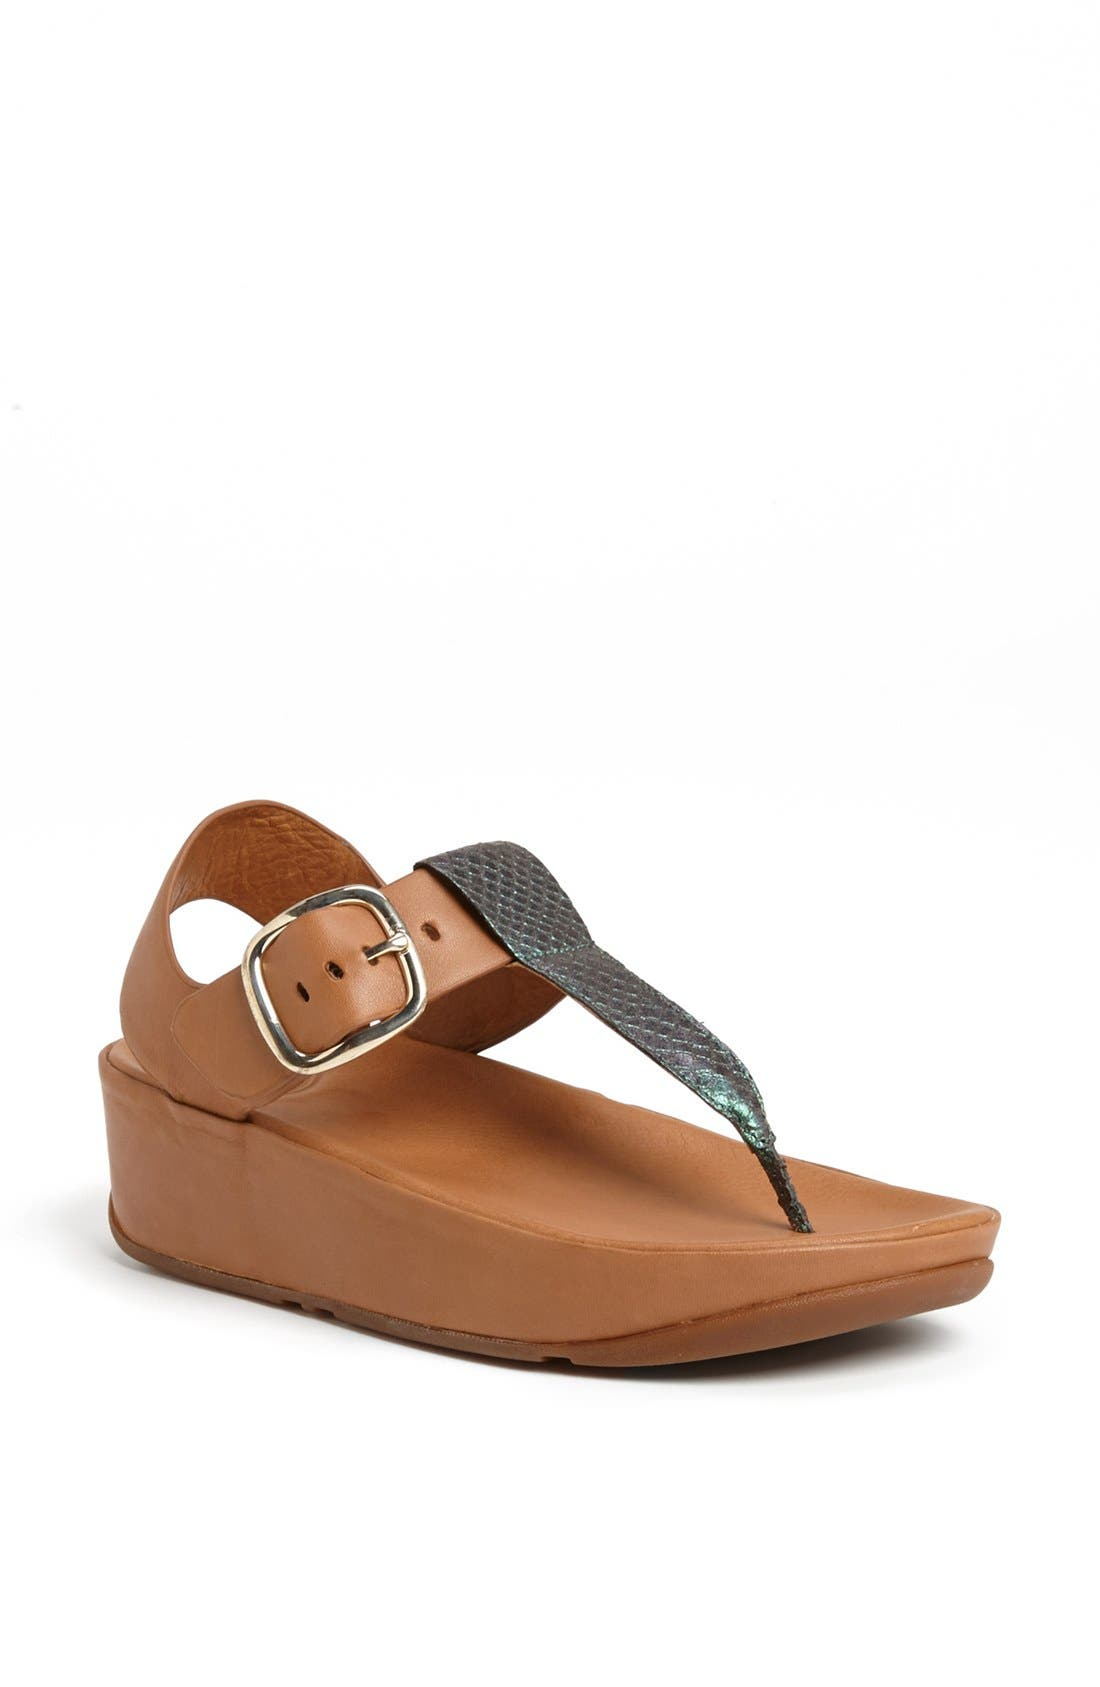 Main Image - FitFlop 'Tia™' Leather Sandal